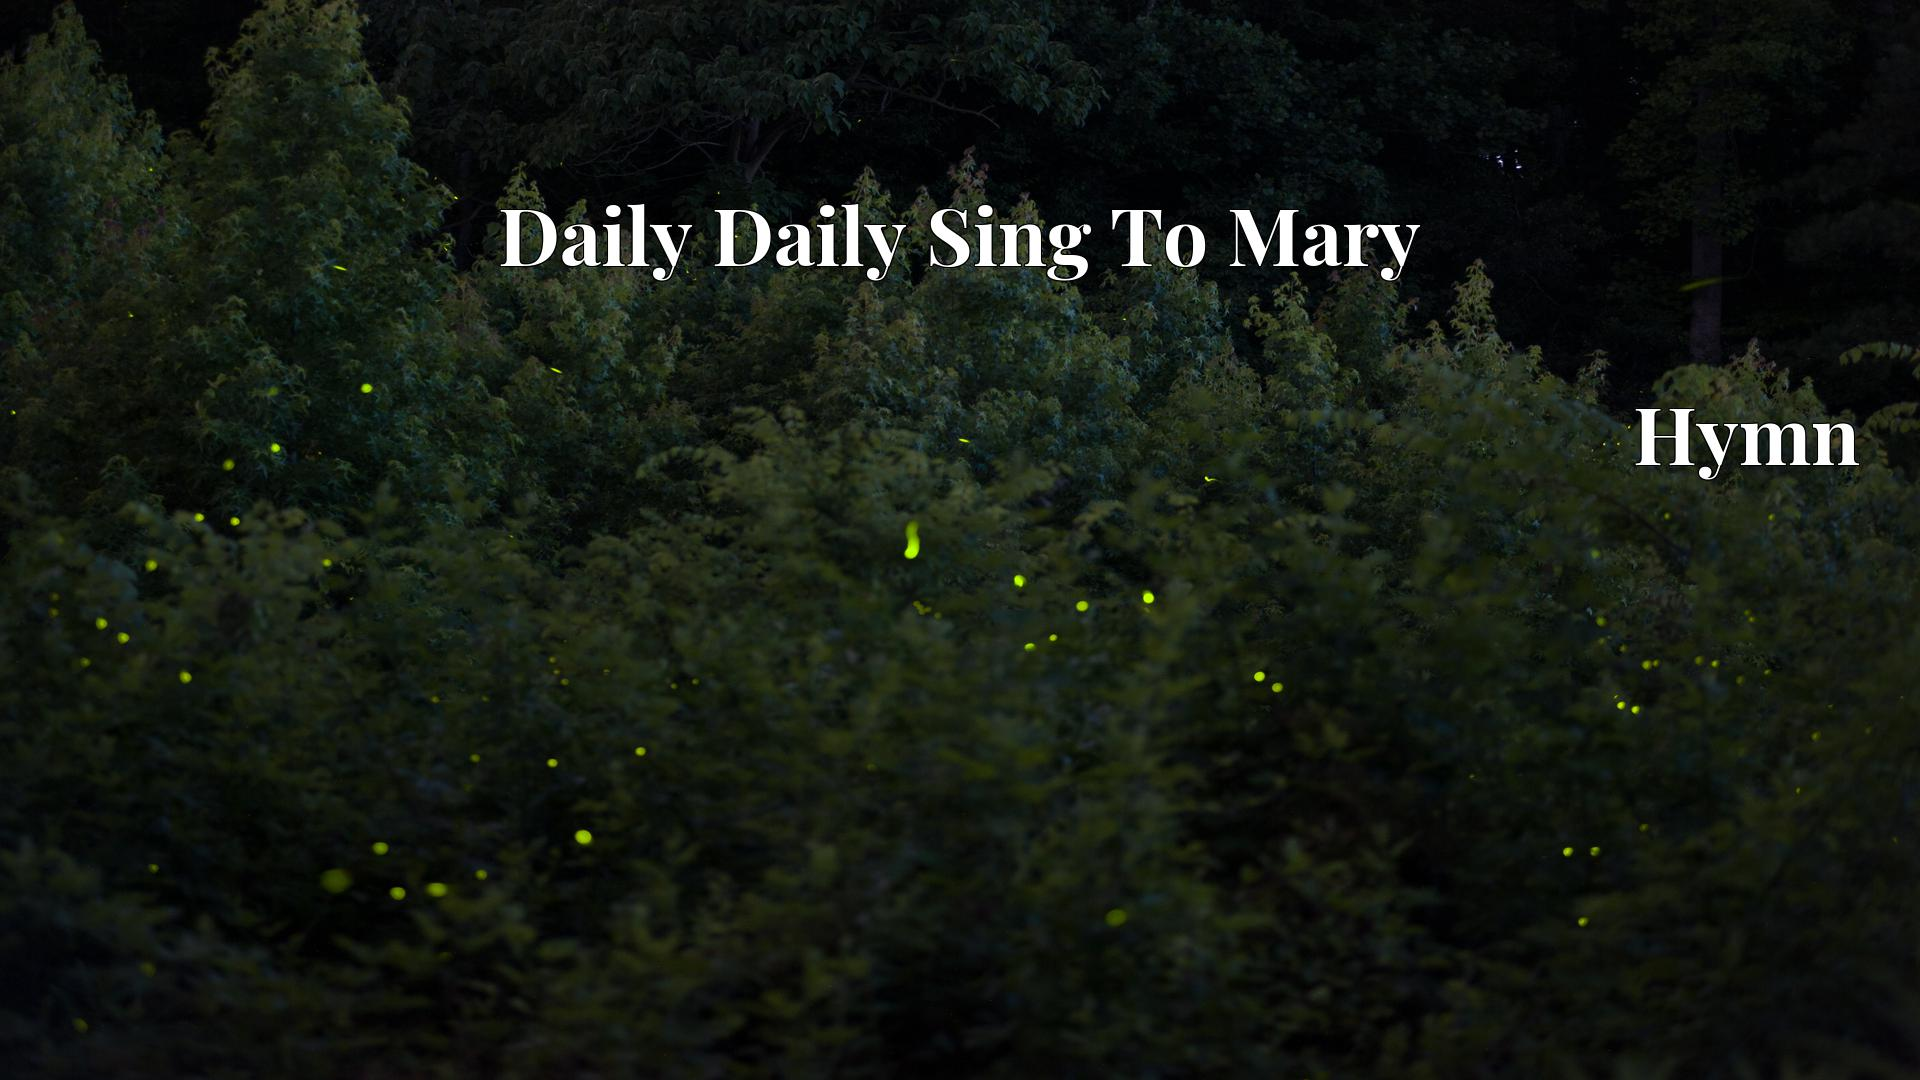 Daily Daily Sing To Mary - Hymn